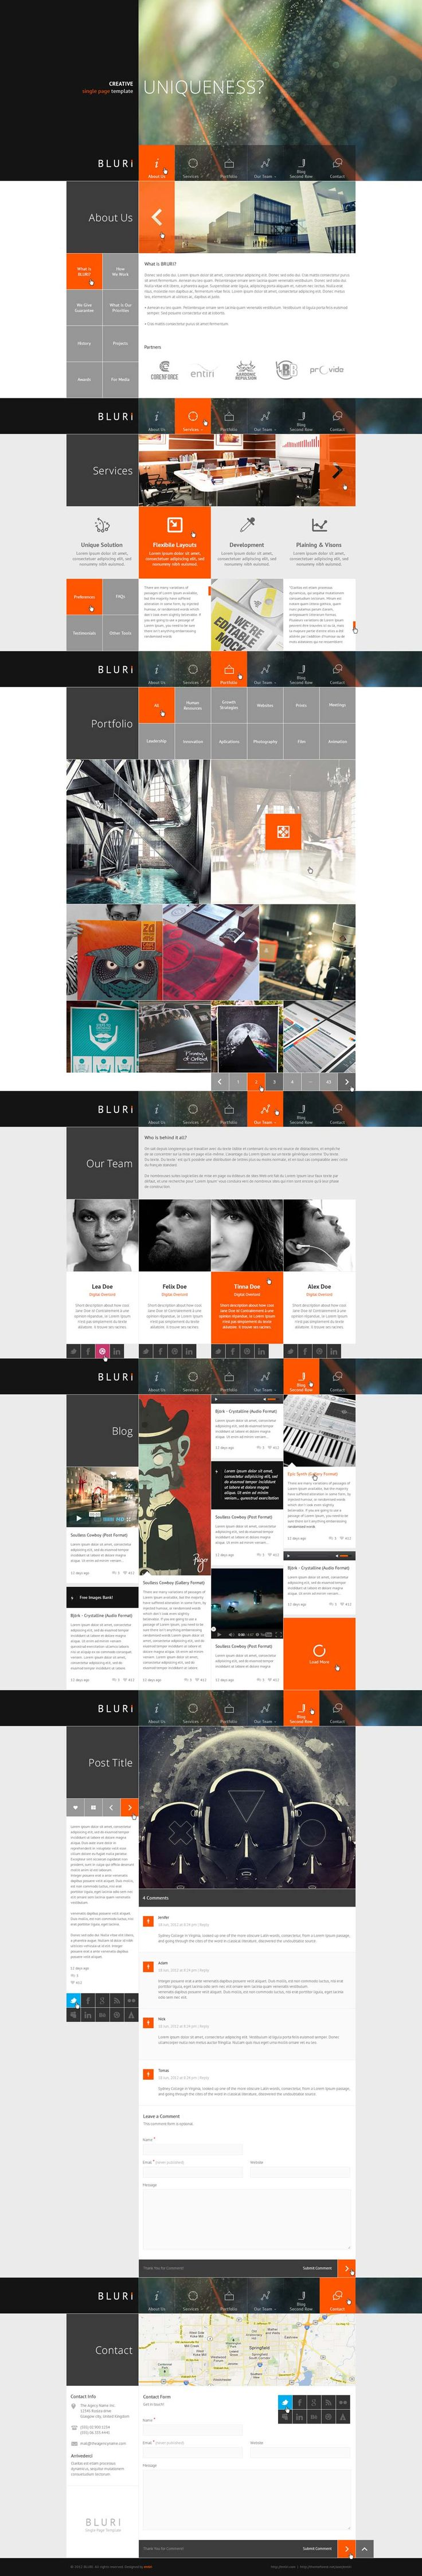 http://themeforest.net/theme_previews/3882654-bluri-single-page-template?index=2